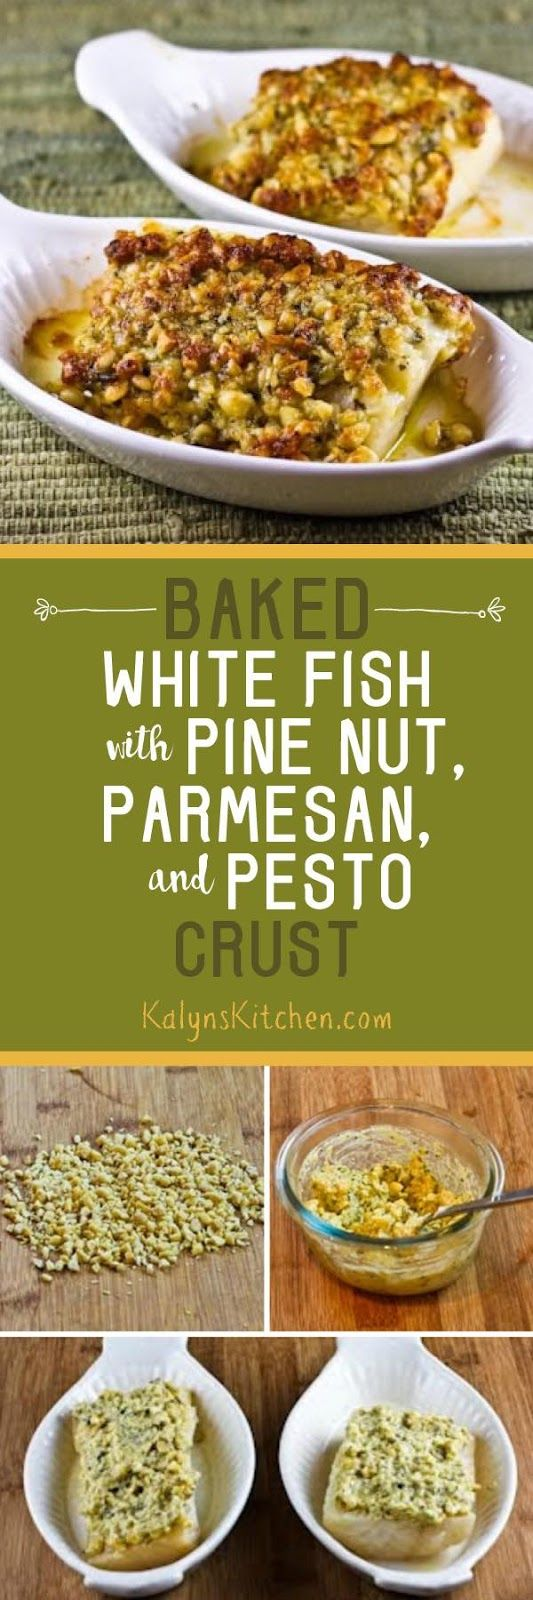 Baked White Fish with Pine Nut, Parmesan, and Basil Pesto Crust is low-carb, gluten-free, and South Beach Diet friendly, and it's special enough to serve to guests. I promise, no one will remotely think of this as diet food! [found on KalynsKitchen.com]